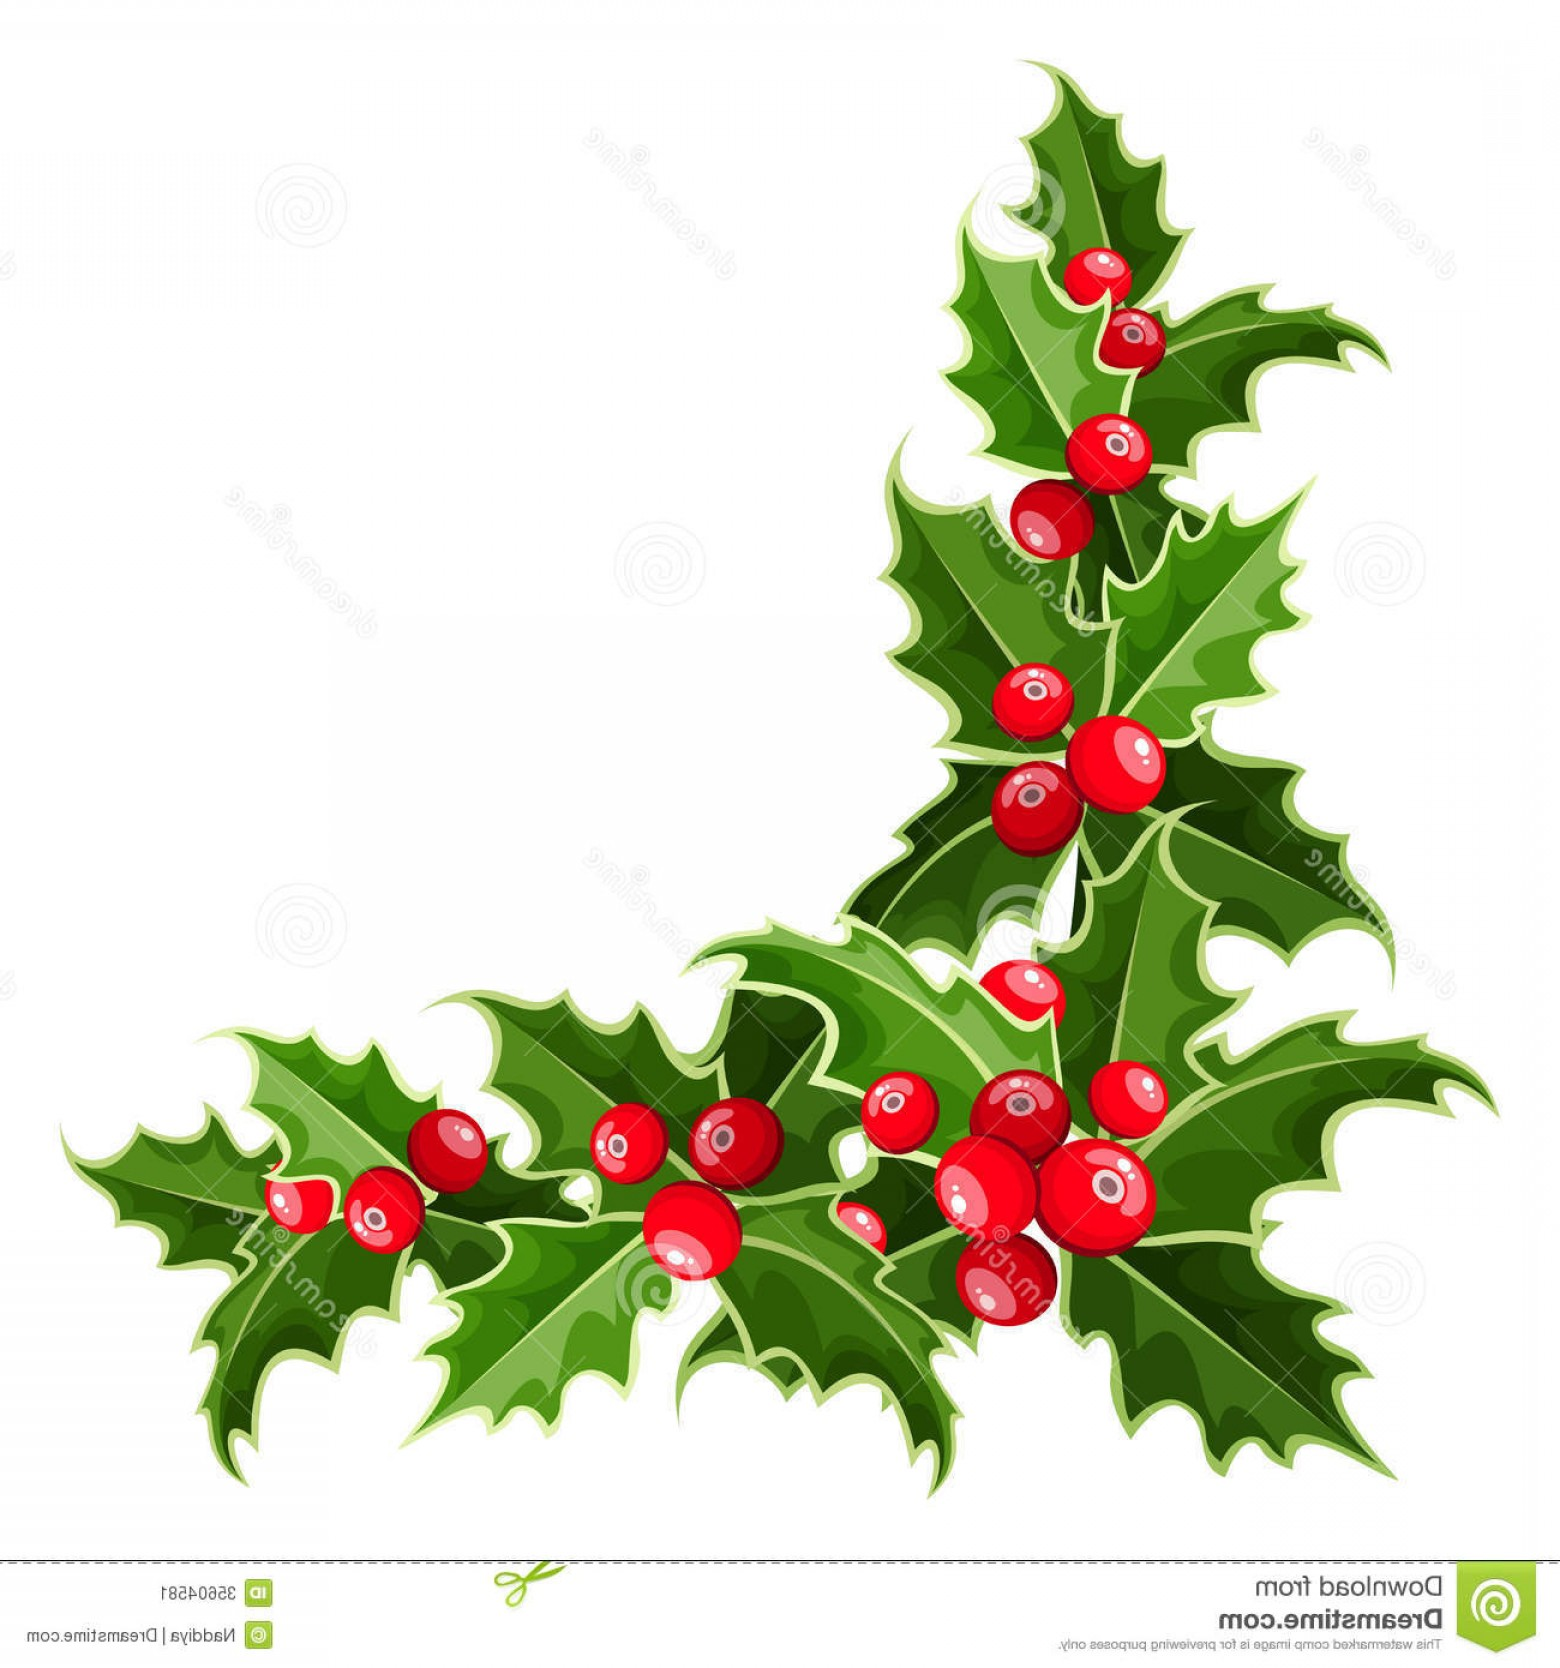 Vector-Based Christmas: Stock Image Decorative Corner Christmas Holly Leaves Berries Image